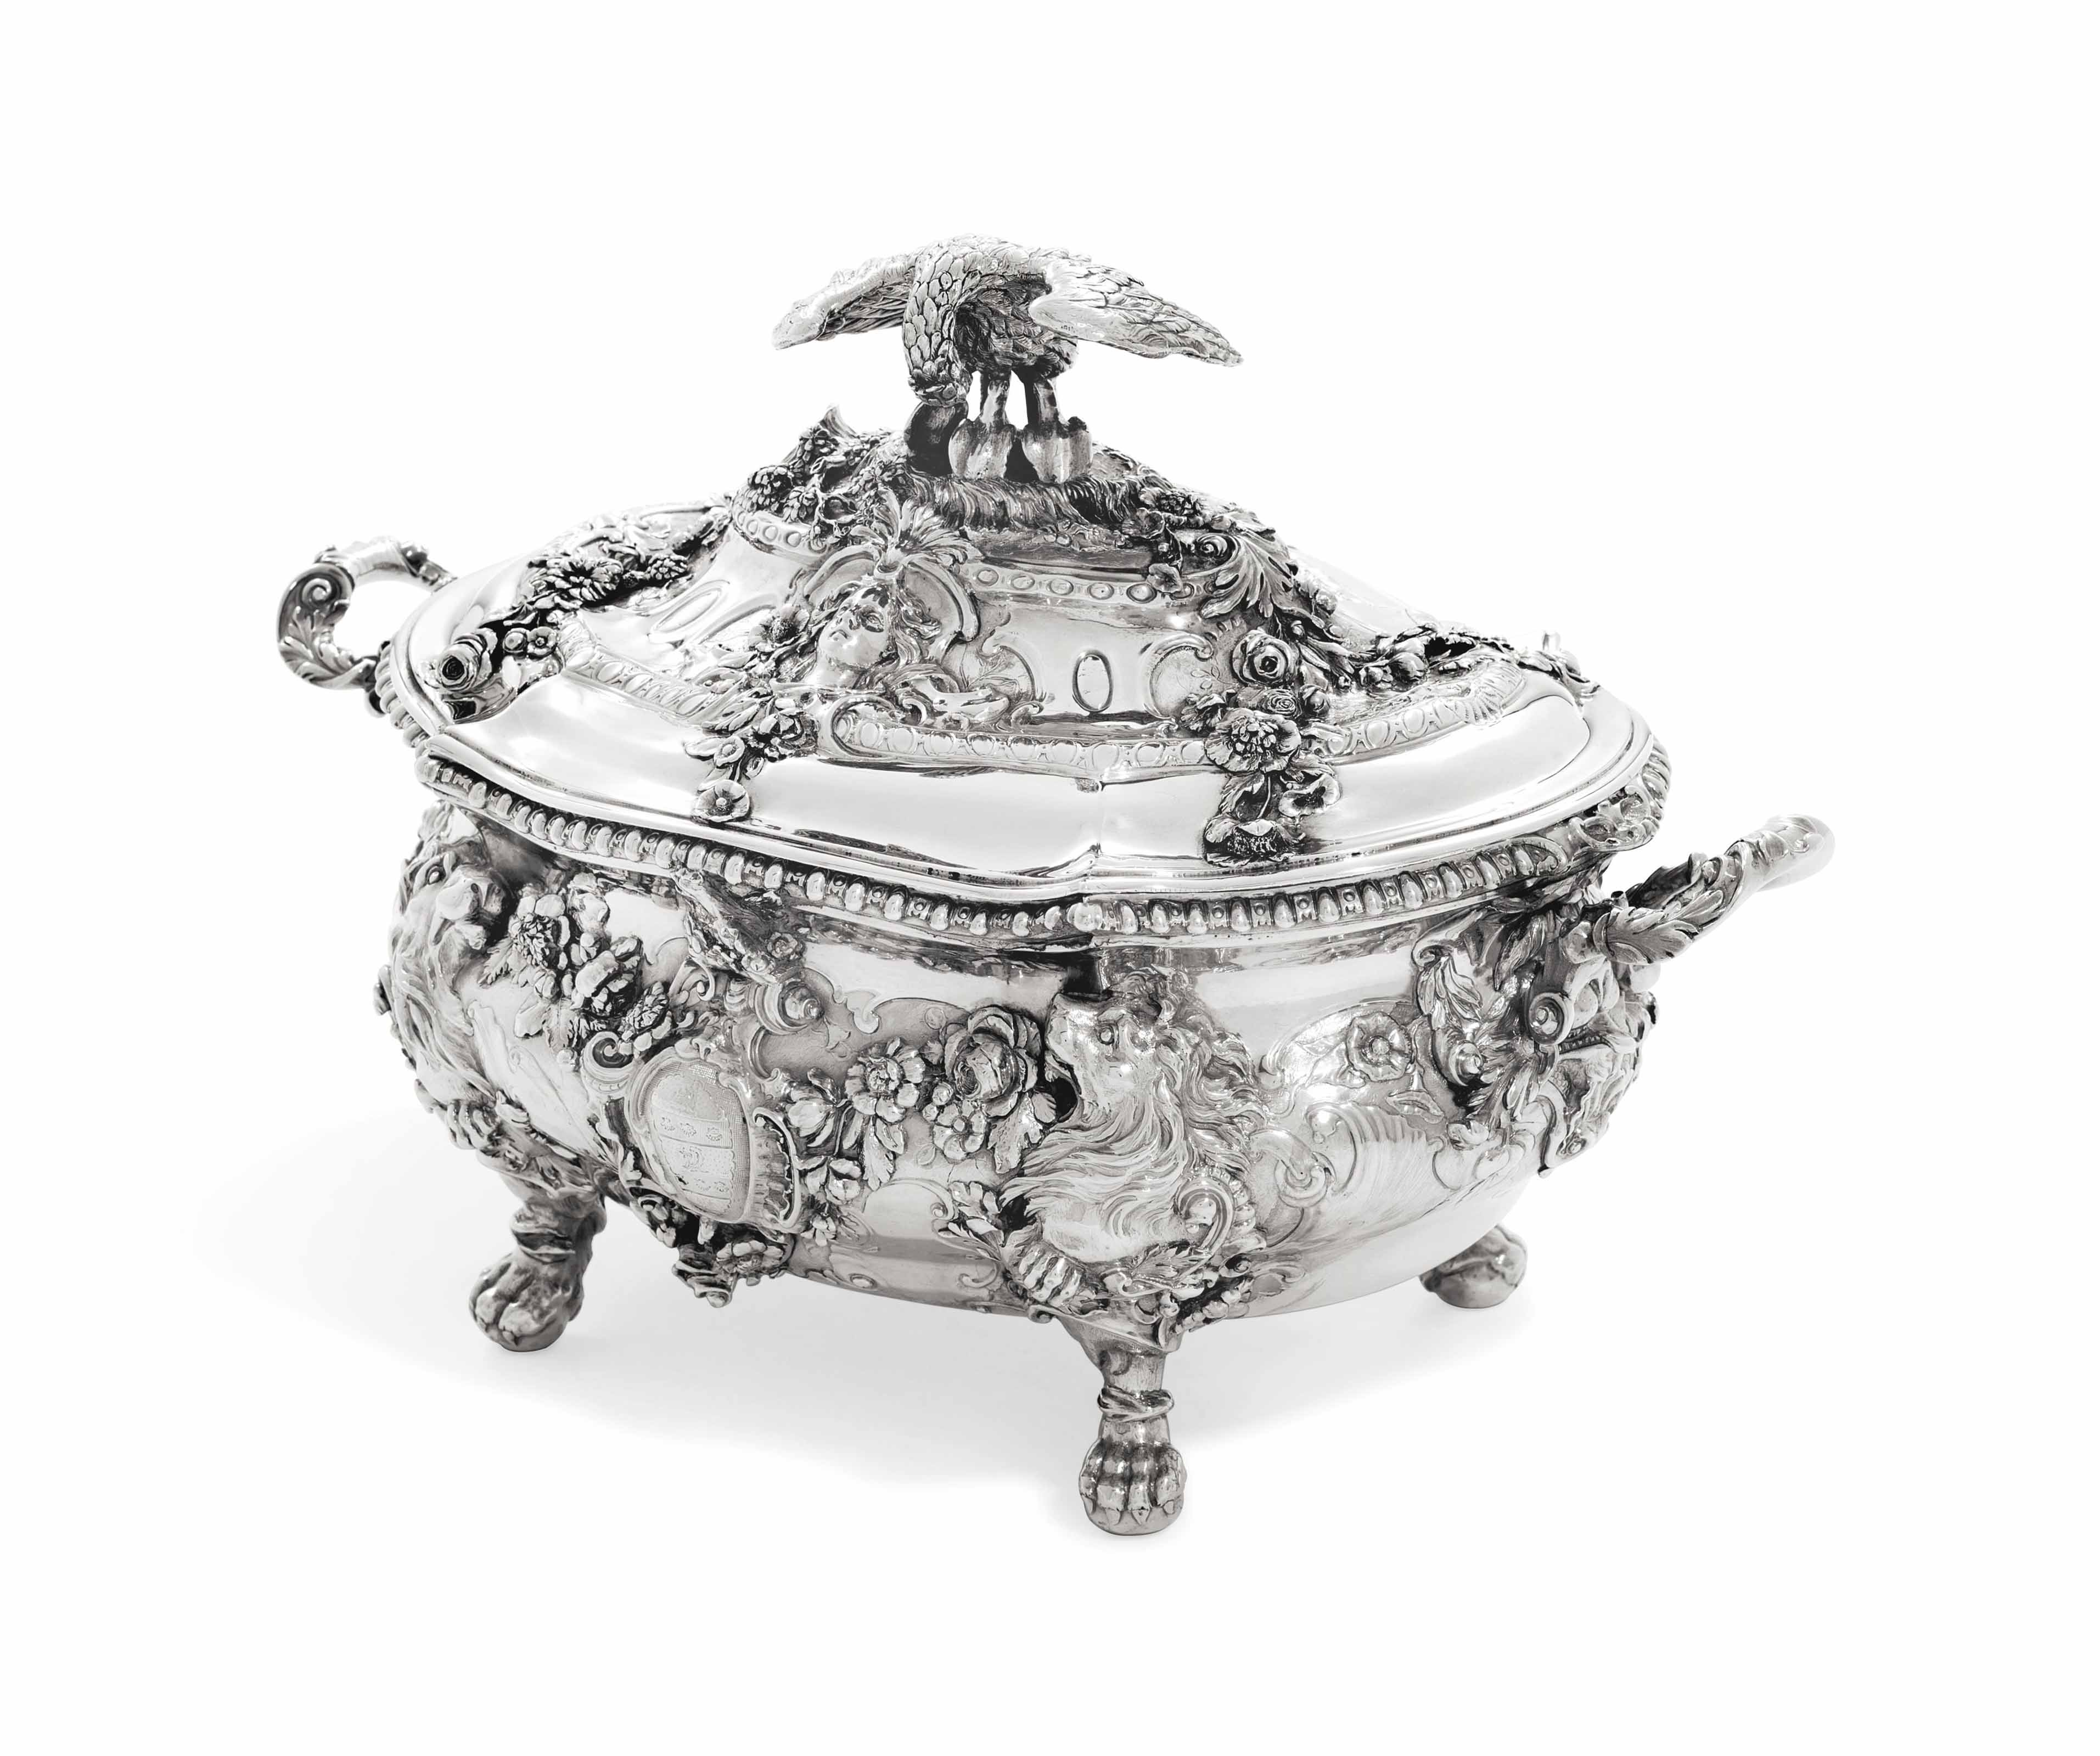 A GEORGE II SILVER SOUP-TUREEN